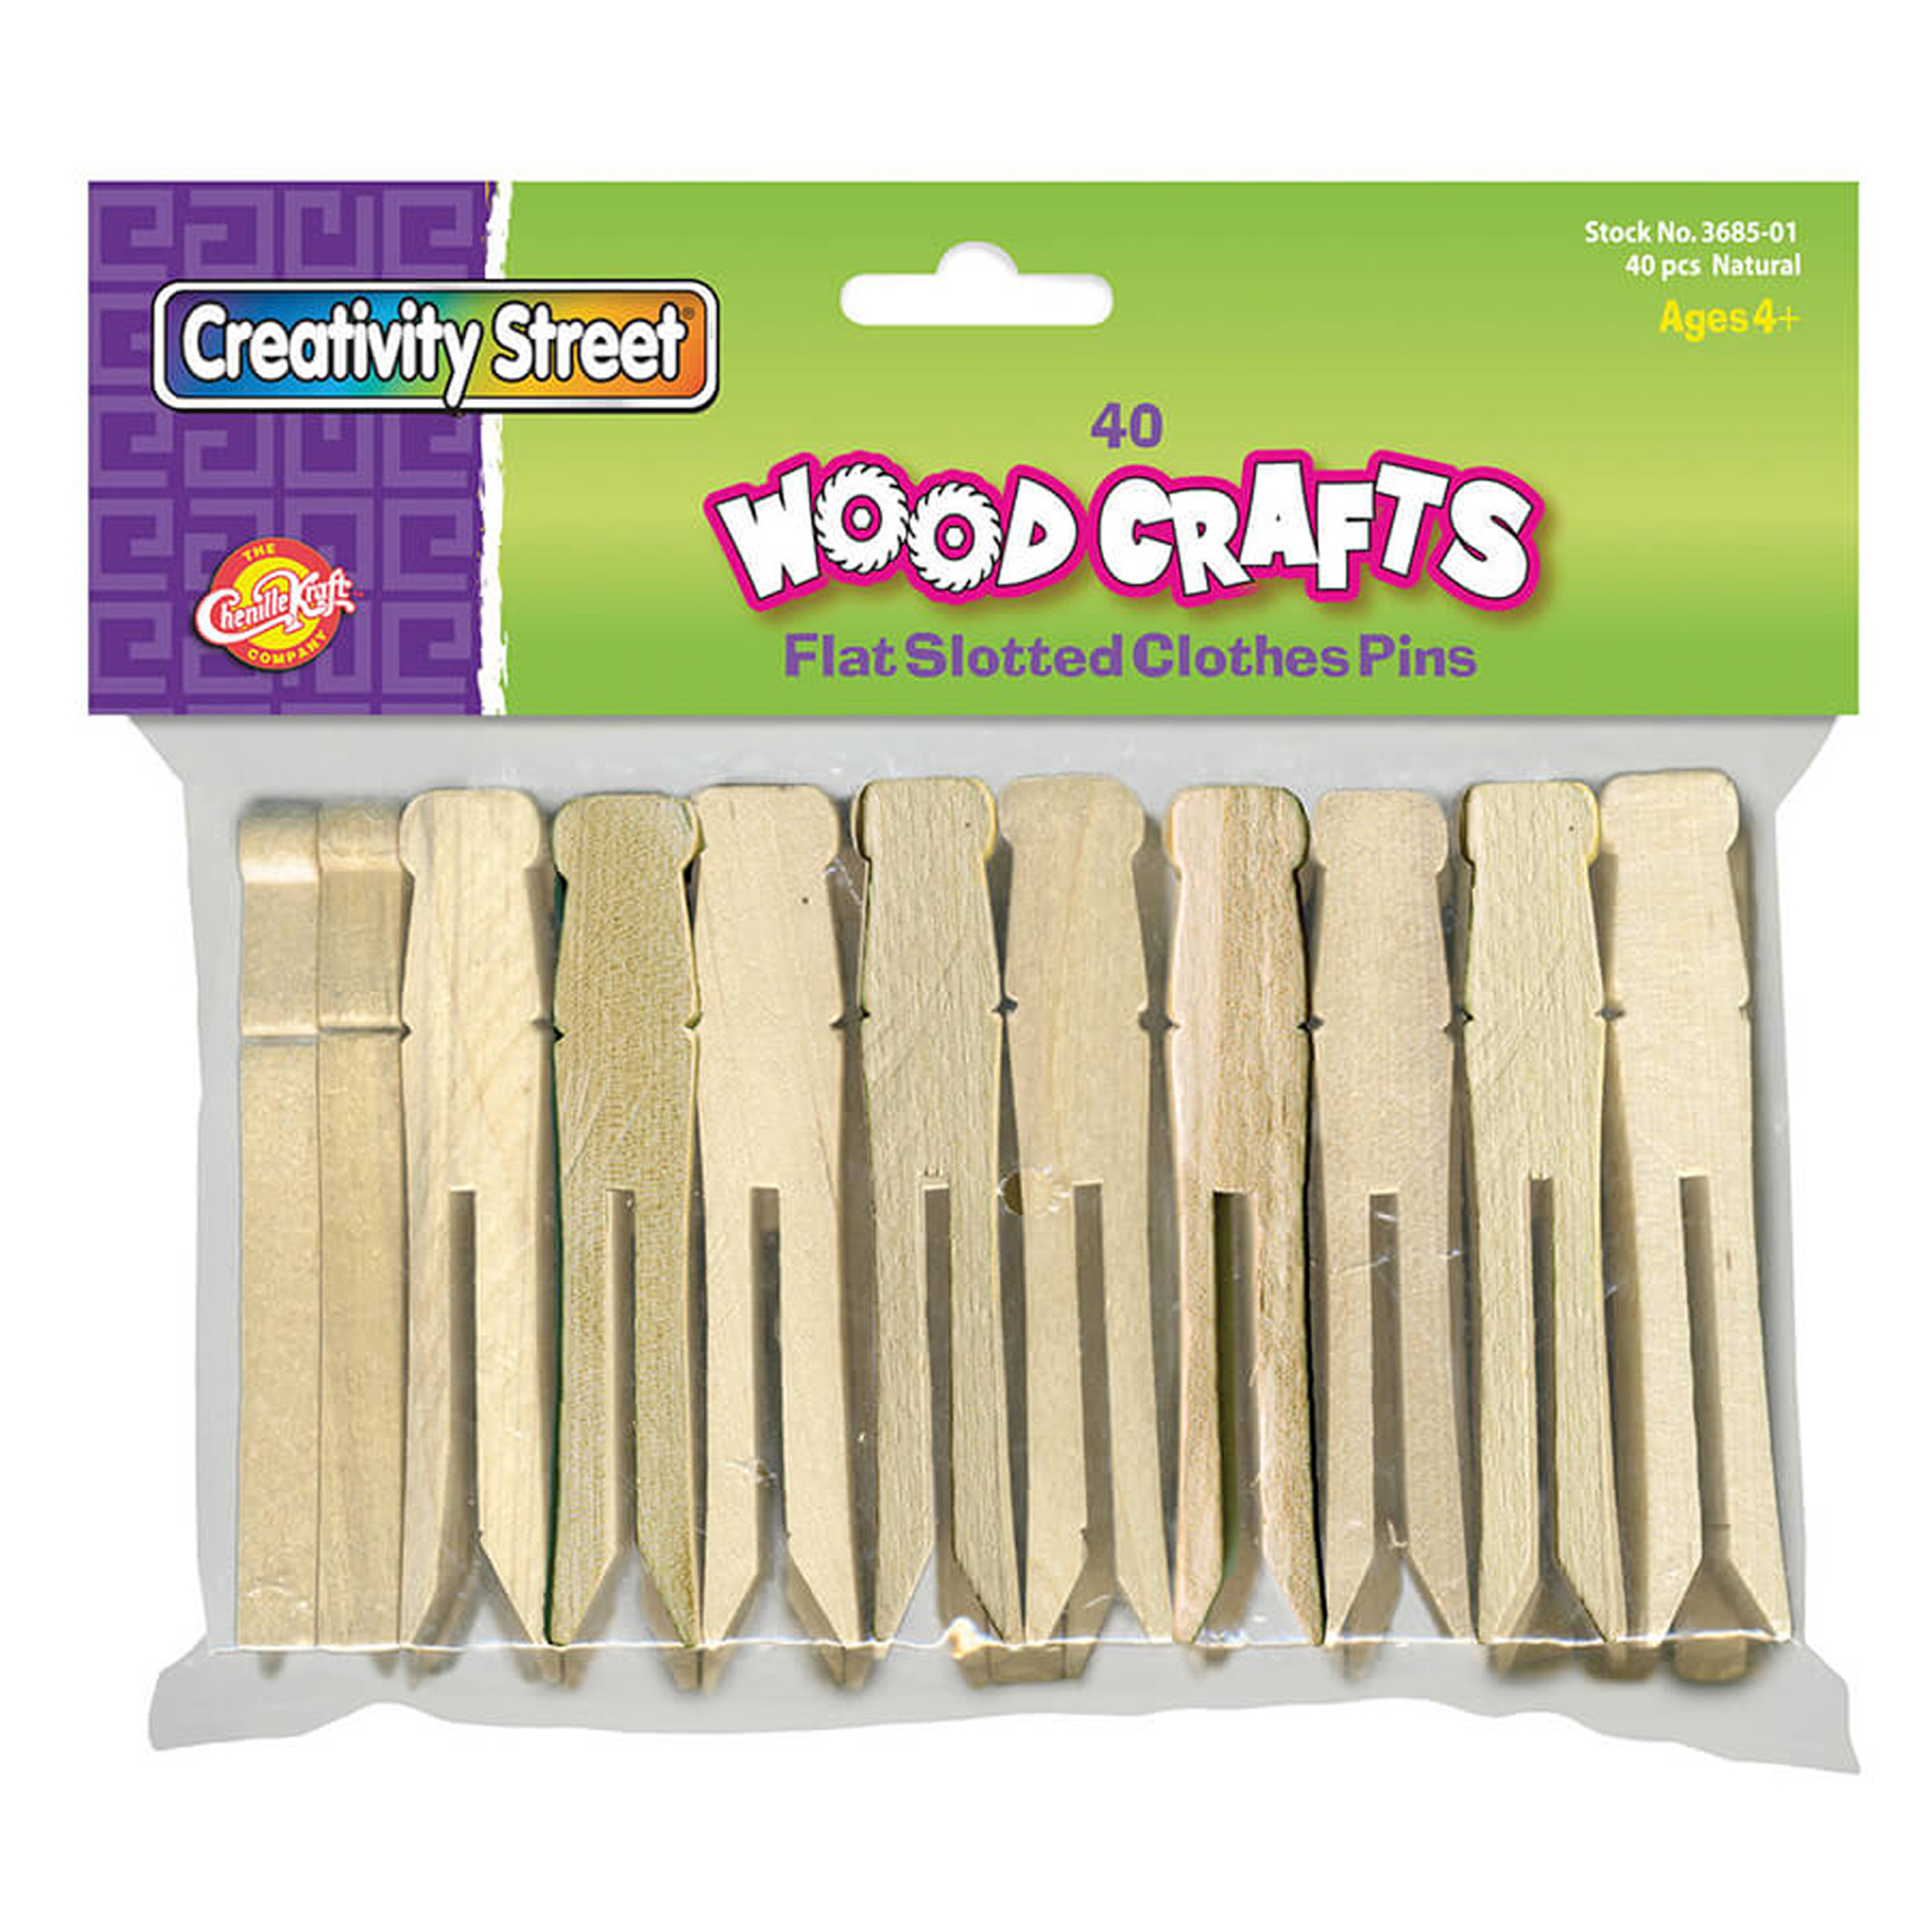 Creativity Street® Wooden Flat Slotted Clothes Pins, Natural - 40 per pack, 6 packs